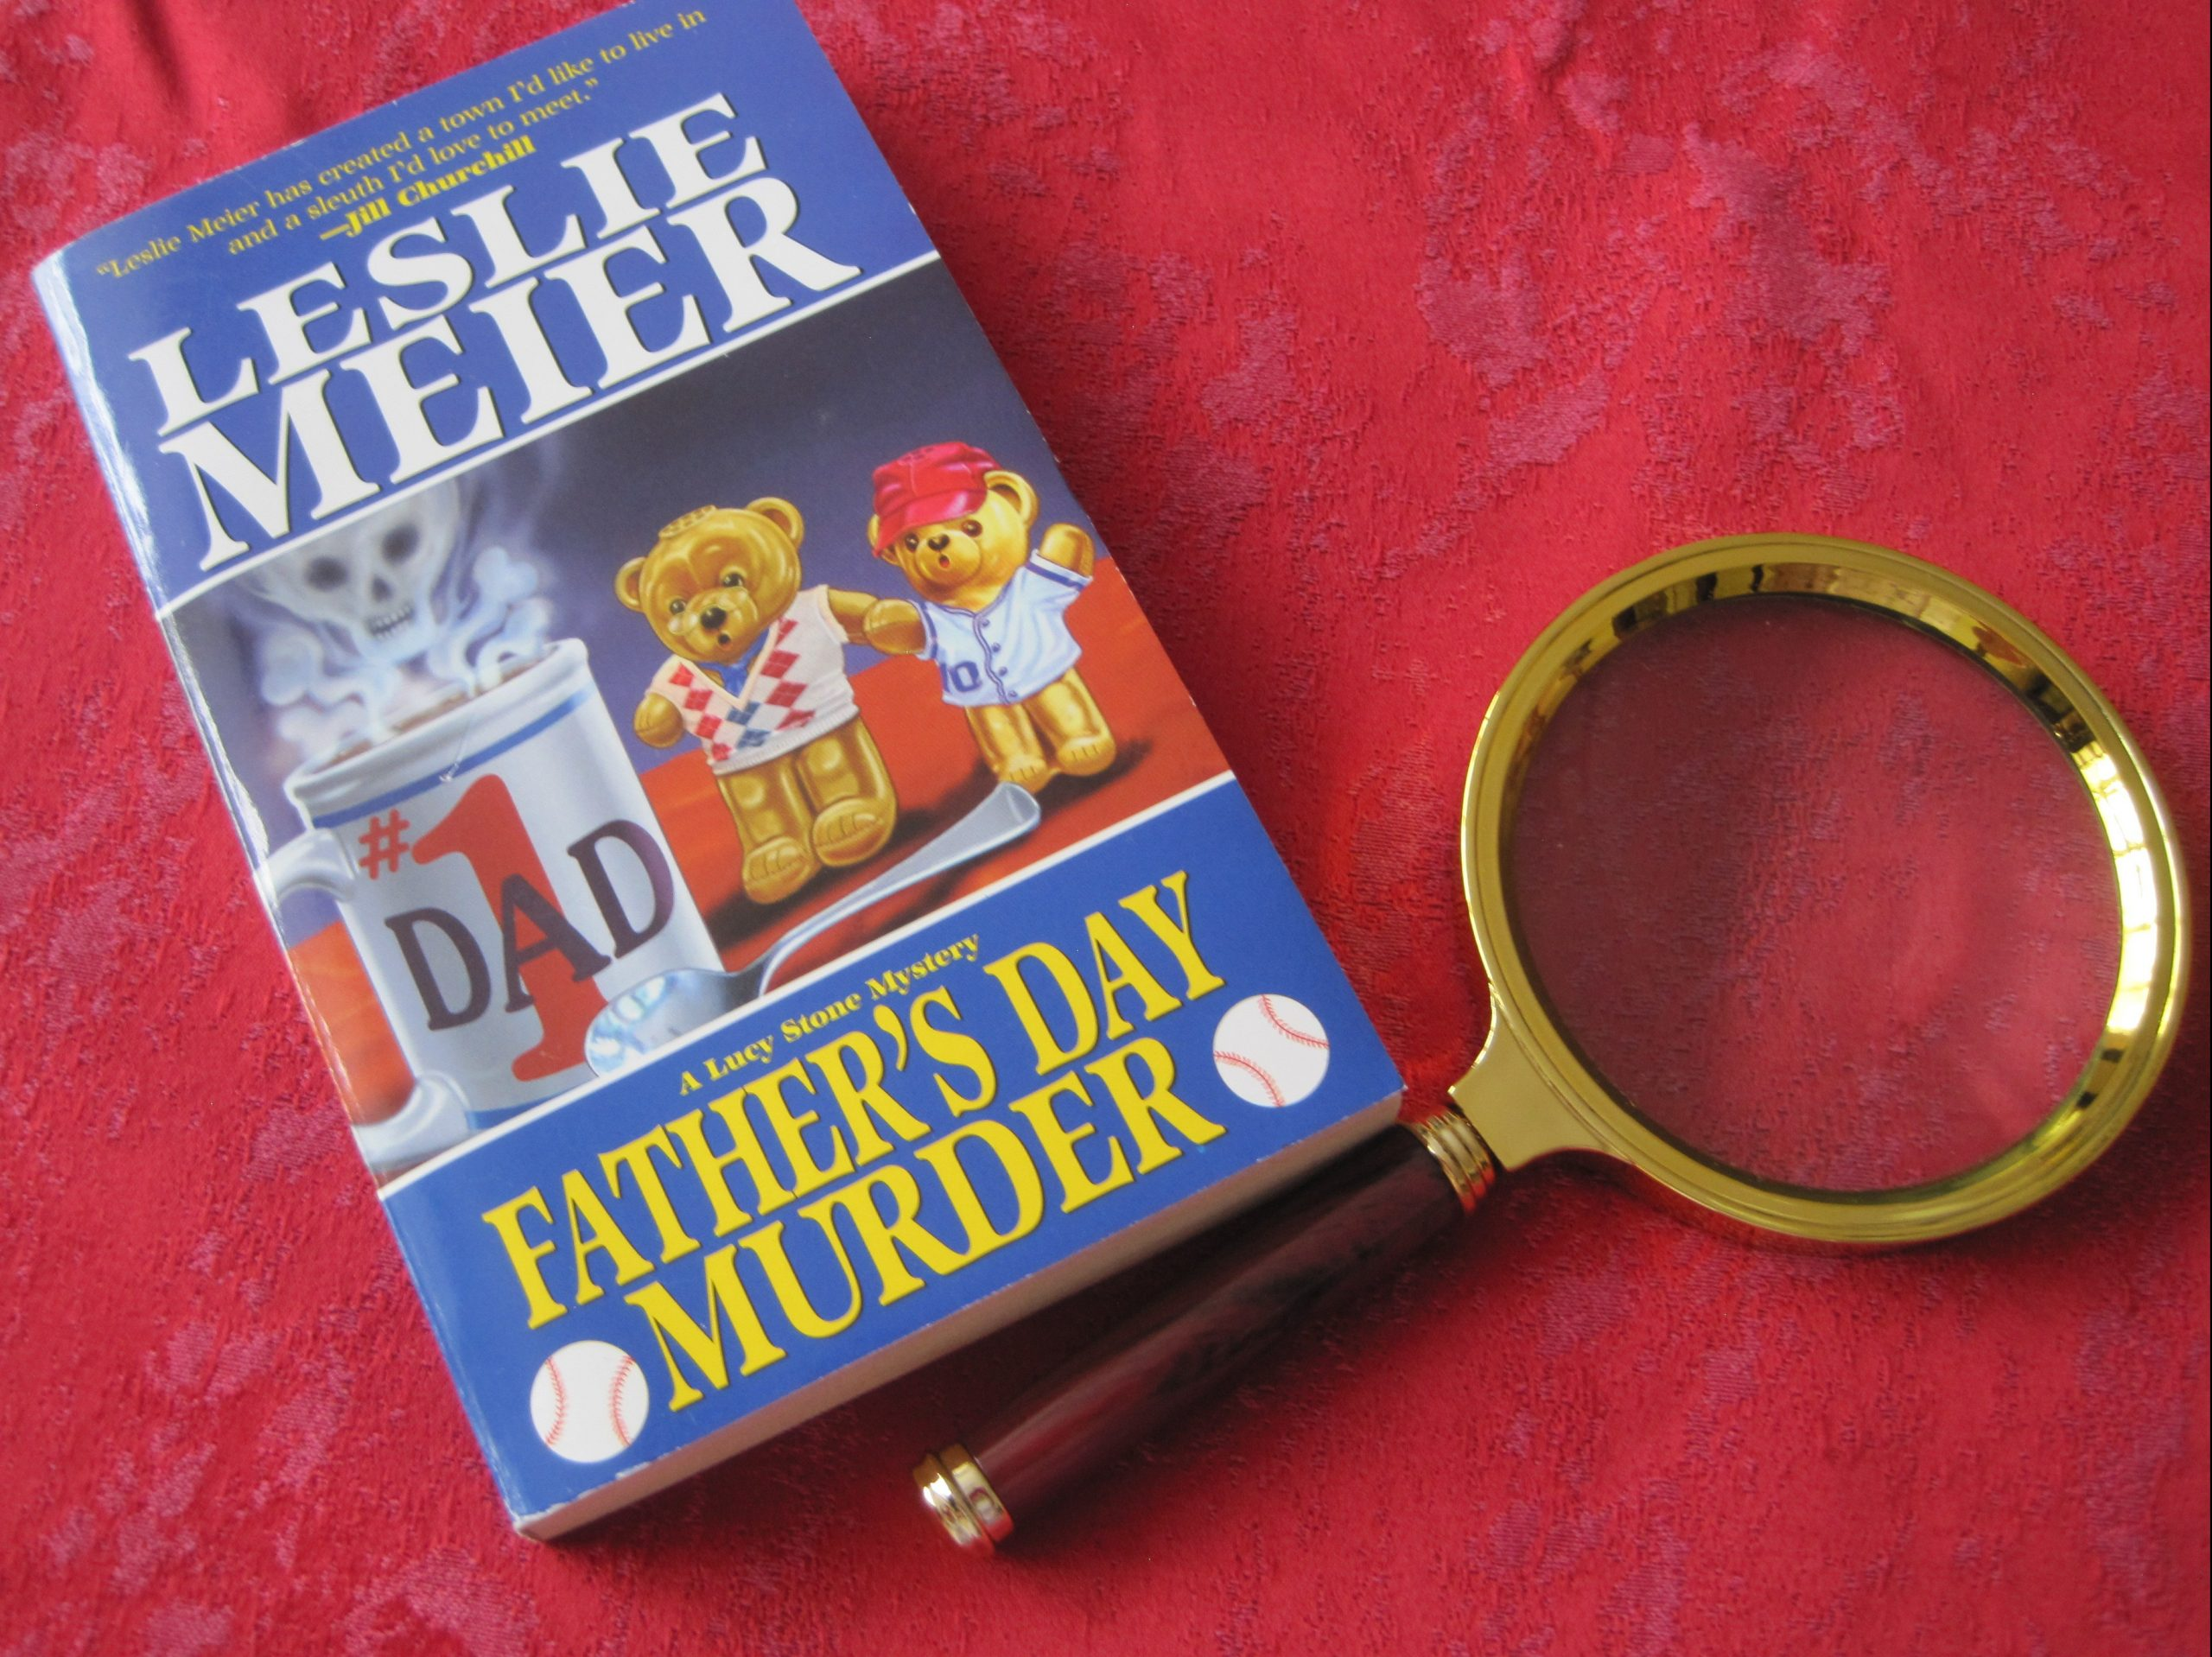 Fathers Day Murder - photo by Juliamaud